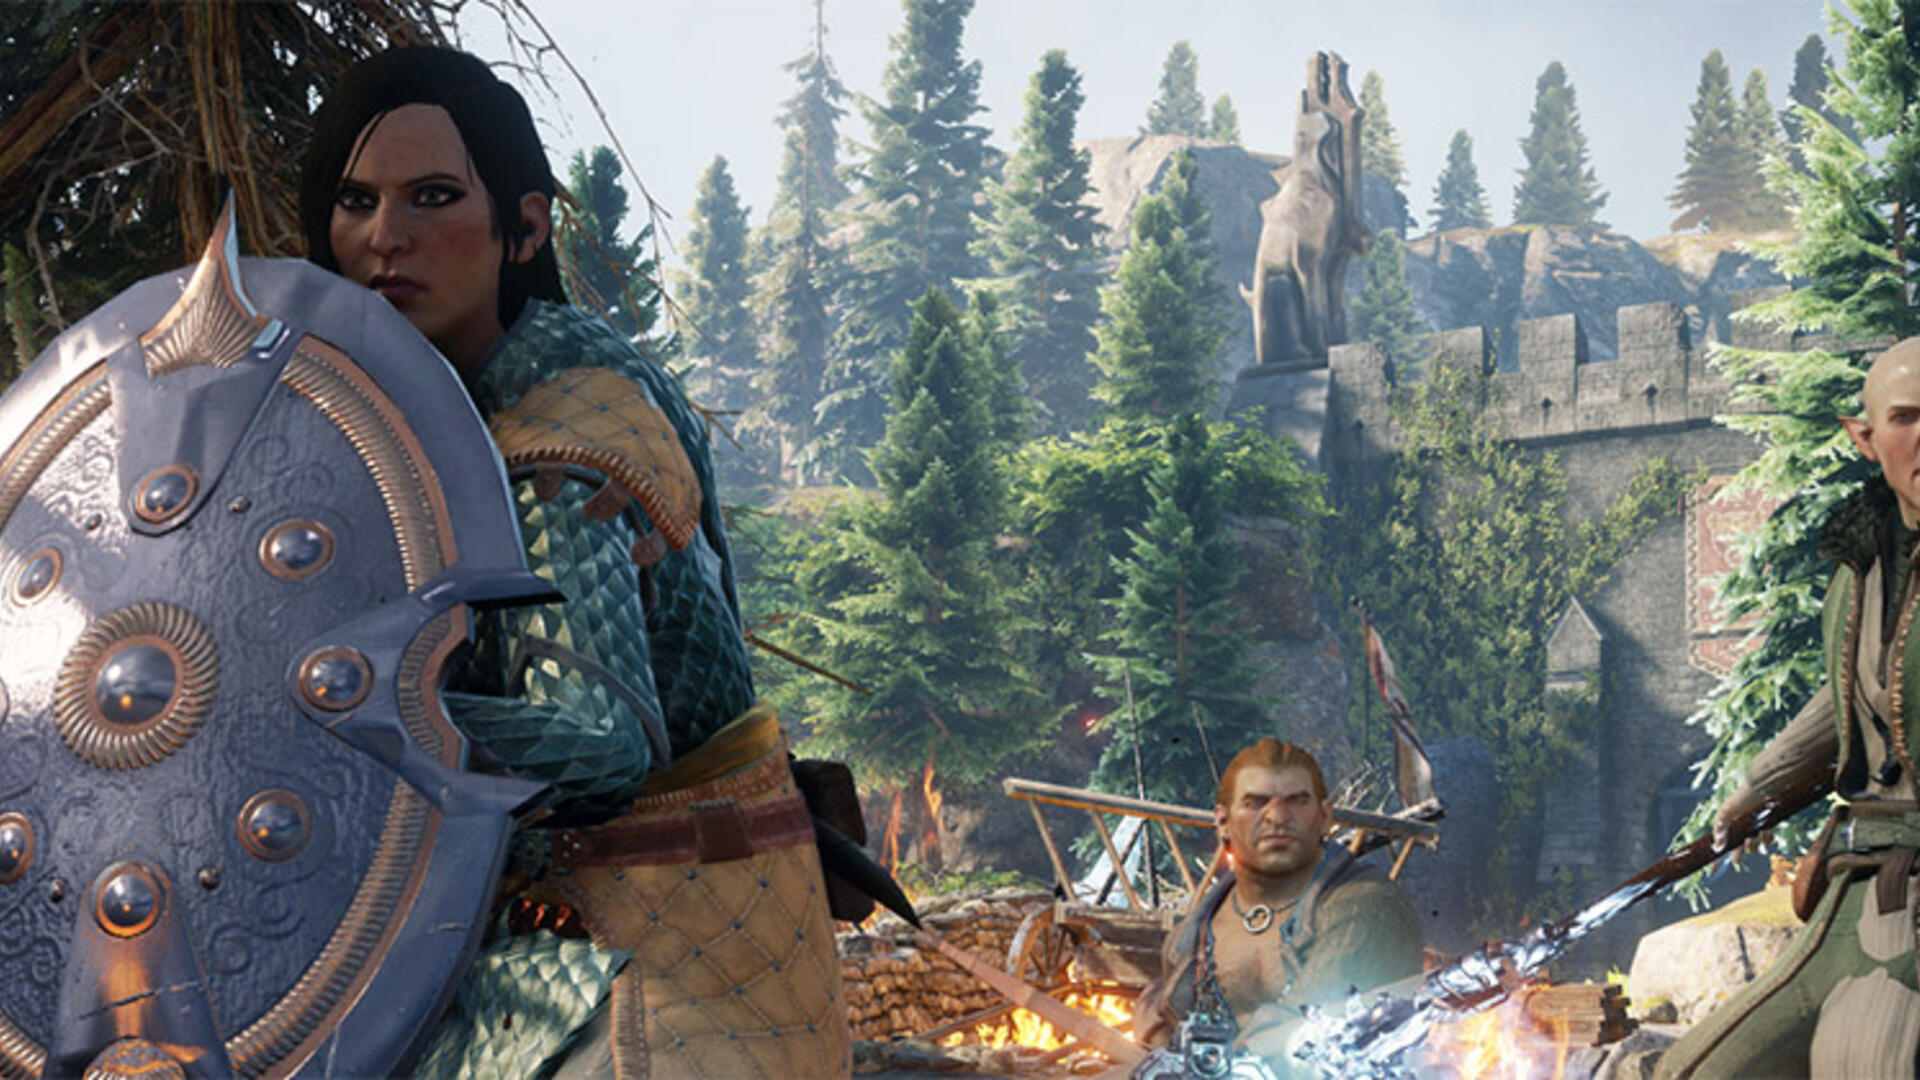 Dragon Age Inquisition Walkthrough: Side Quests & Beginner's Tips